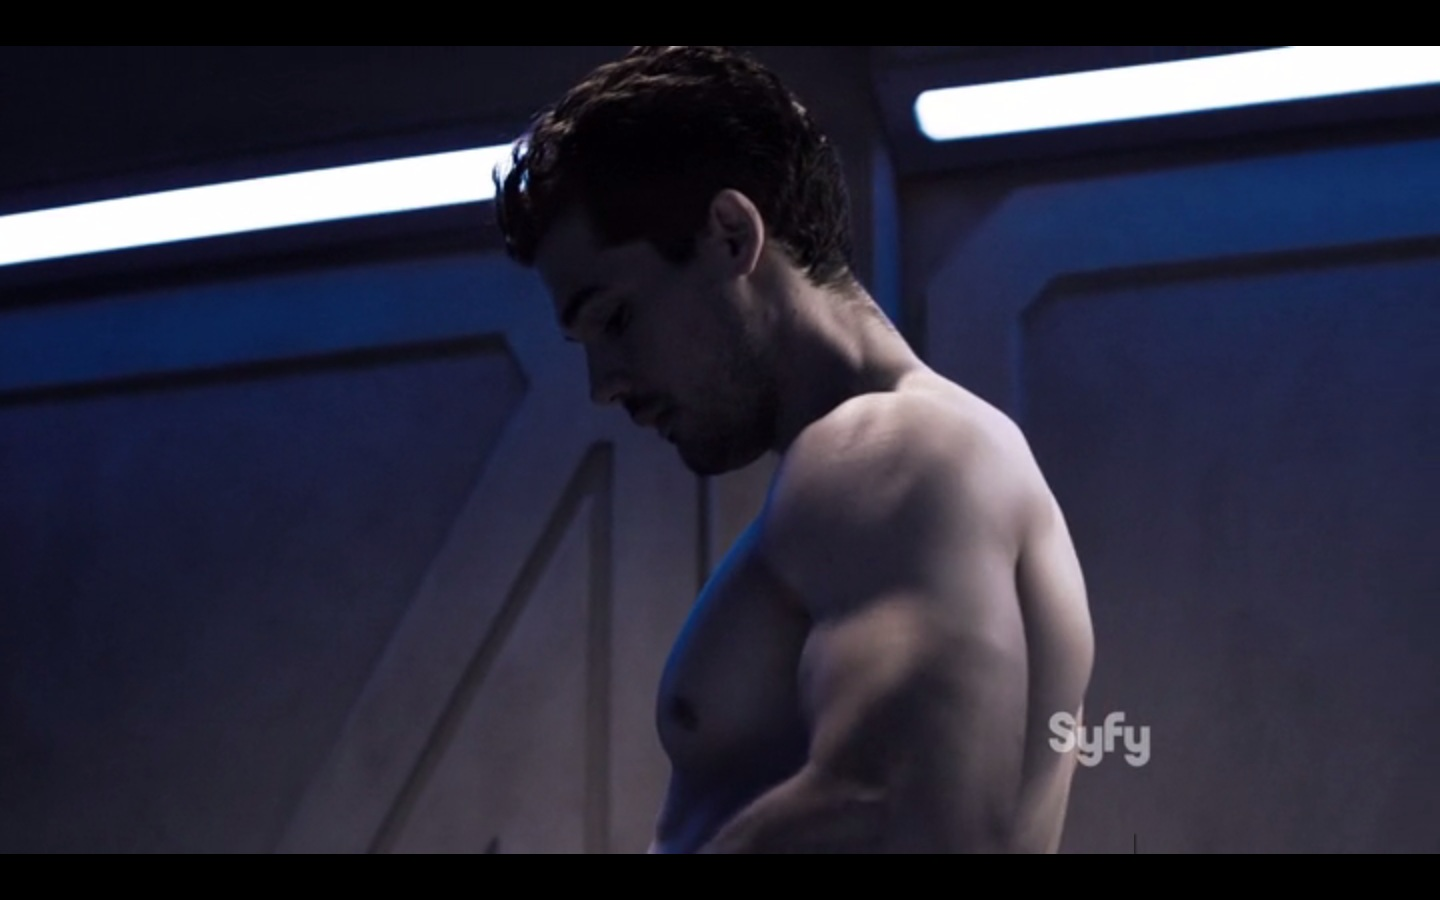 Agree, Steven strait nude are absolutely